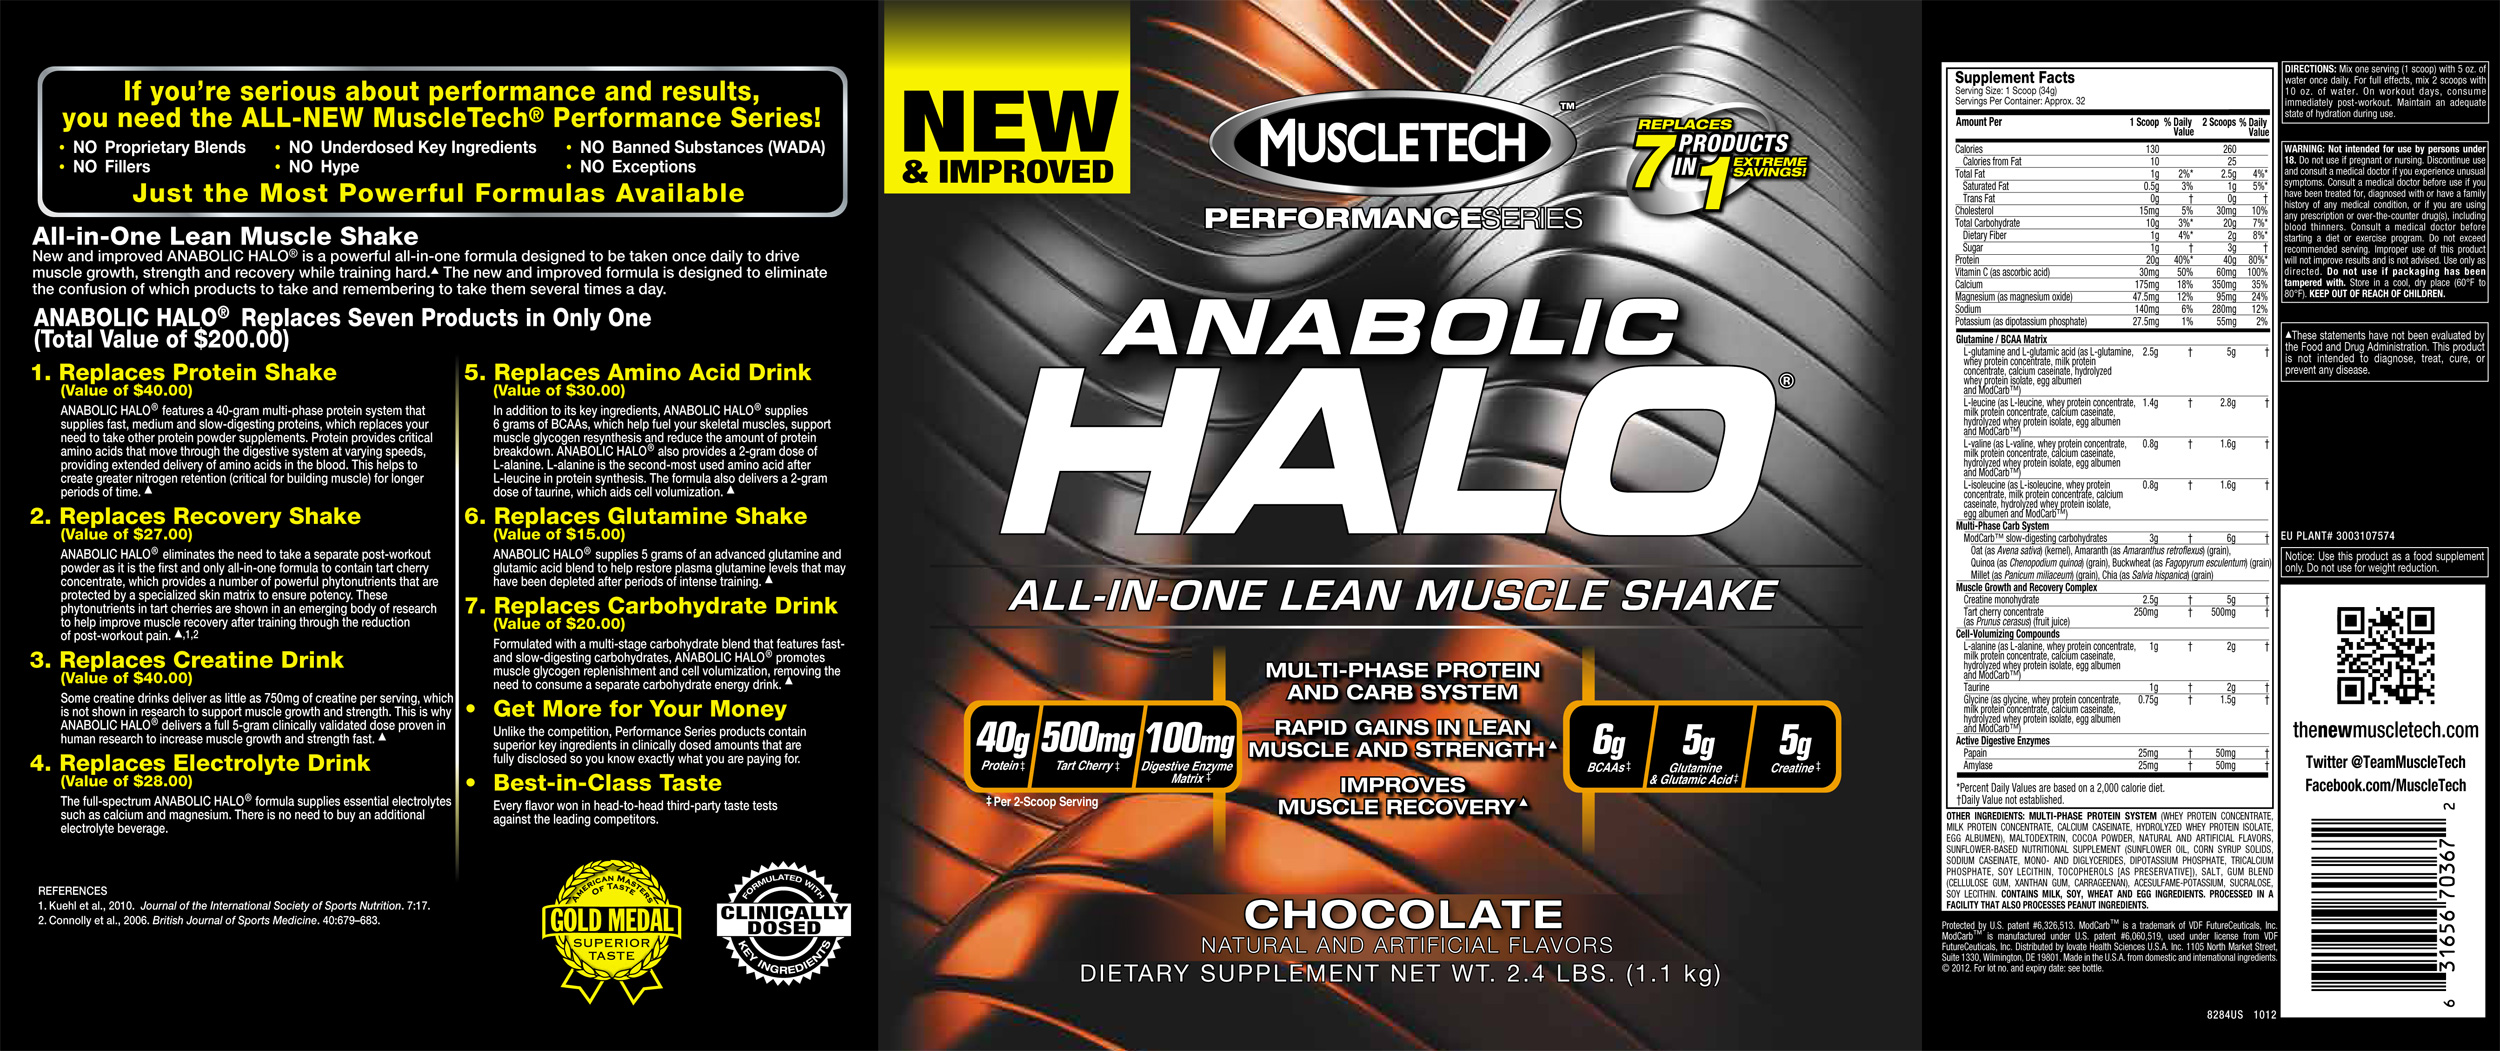 muscletech anabolic halo nutrition facts